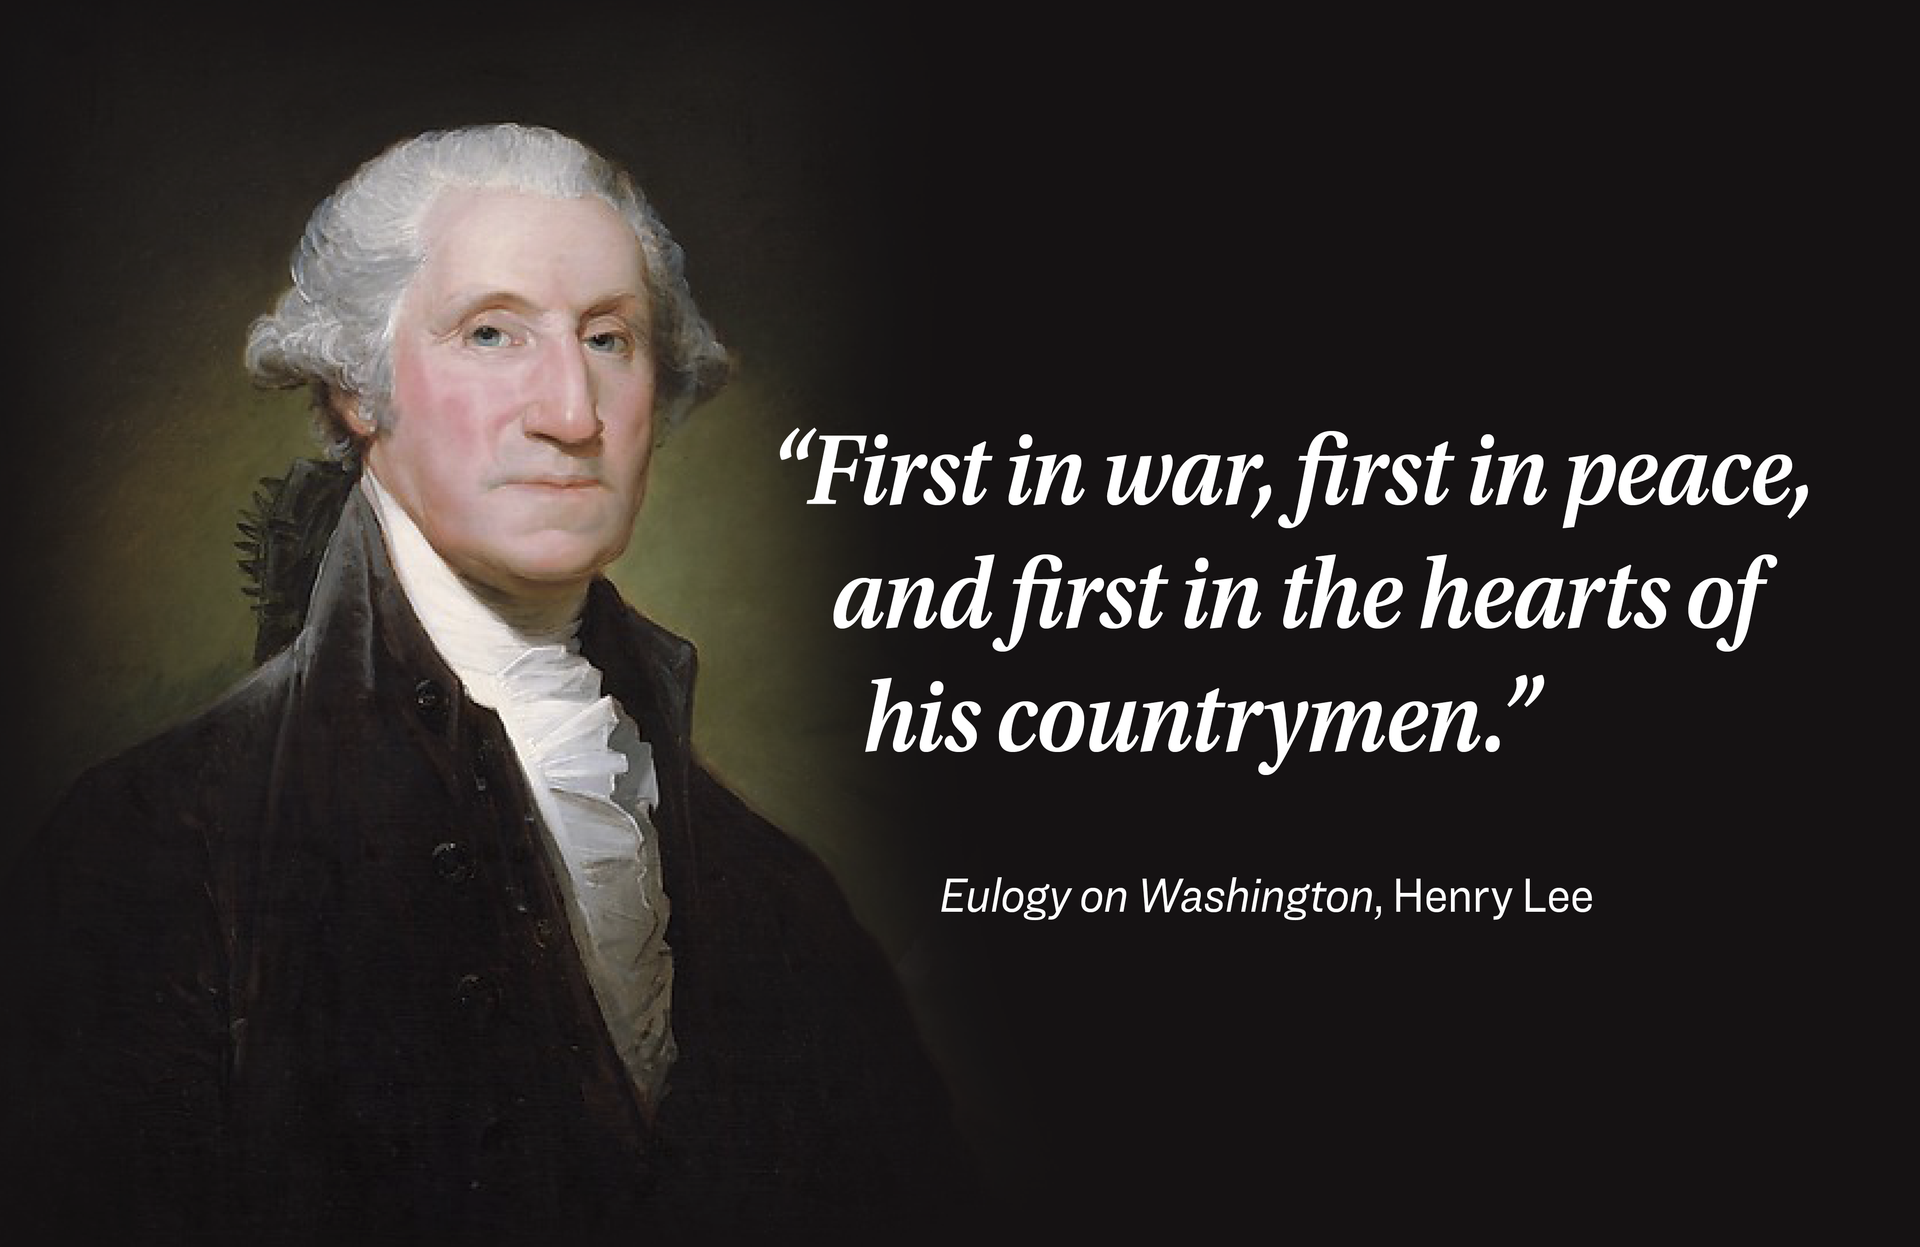 President George Washington is one of our nation's most iconic presidents